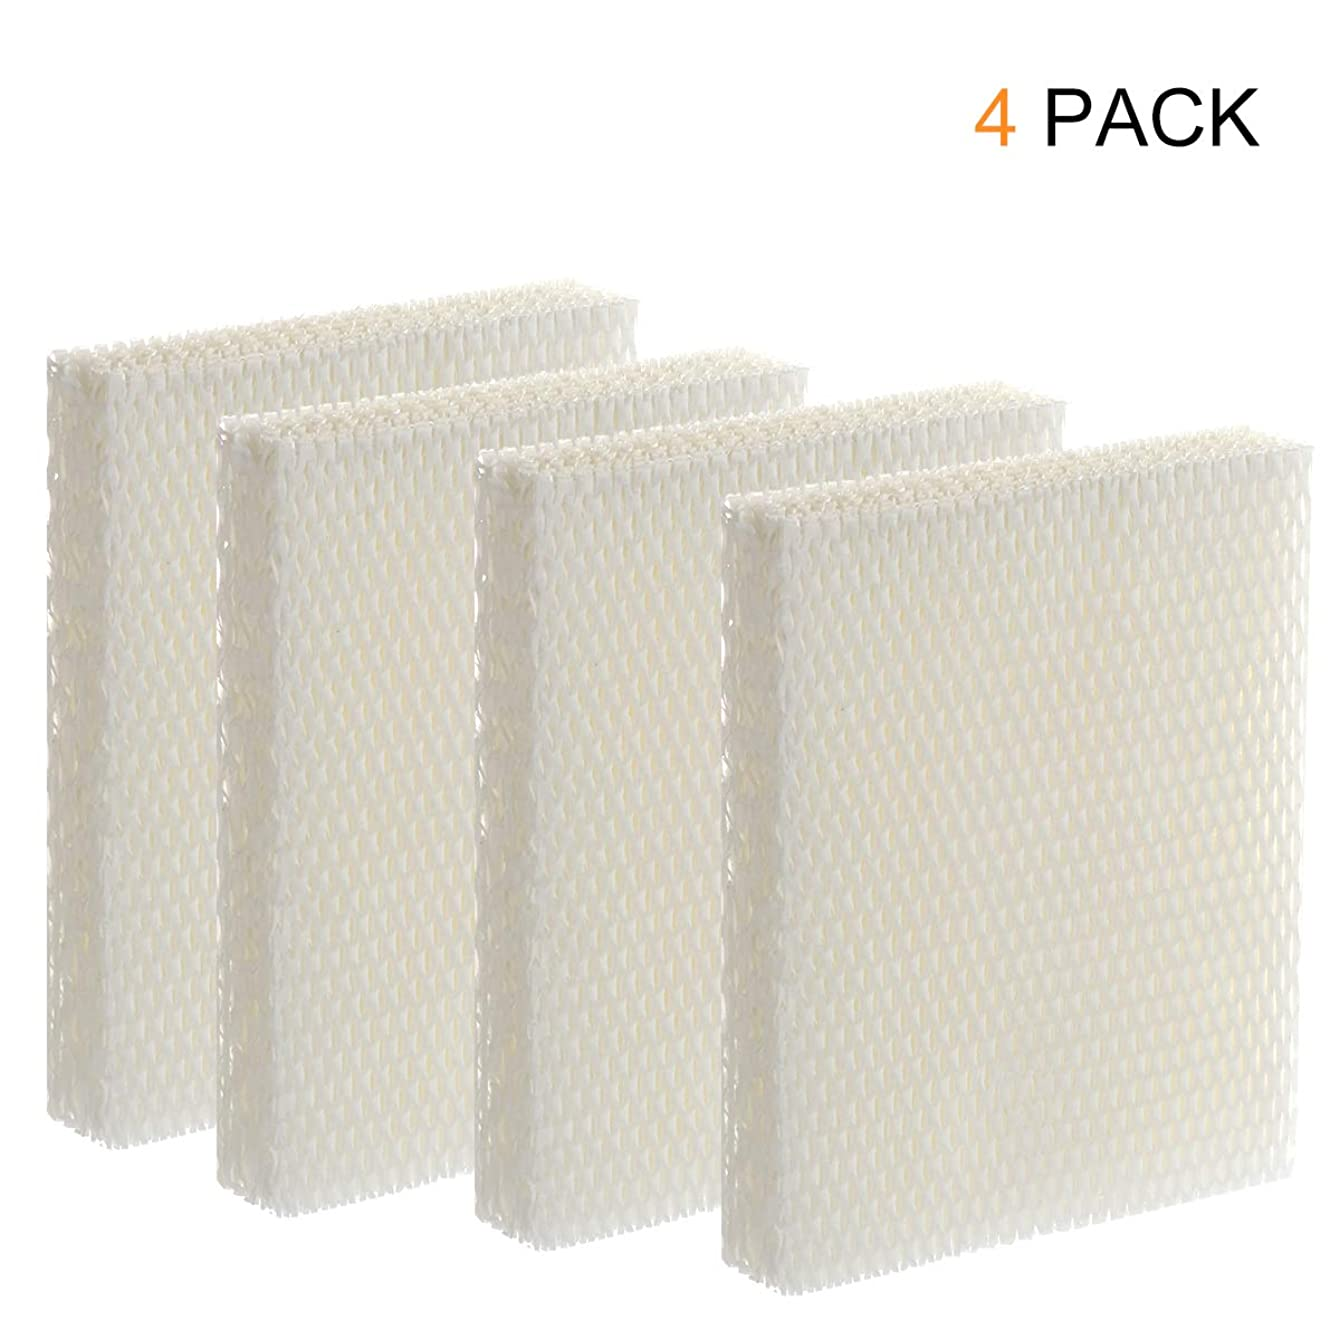 Wigbow HFT600 4 Pack Humidifier Compatible Filter, Wigbow Filter T - Made for HEV615 and HEV620 Models